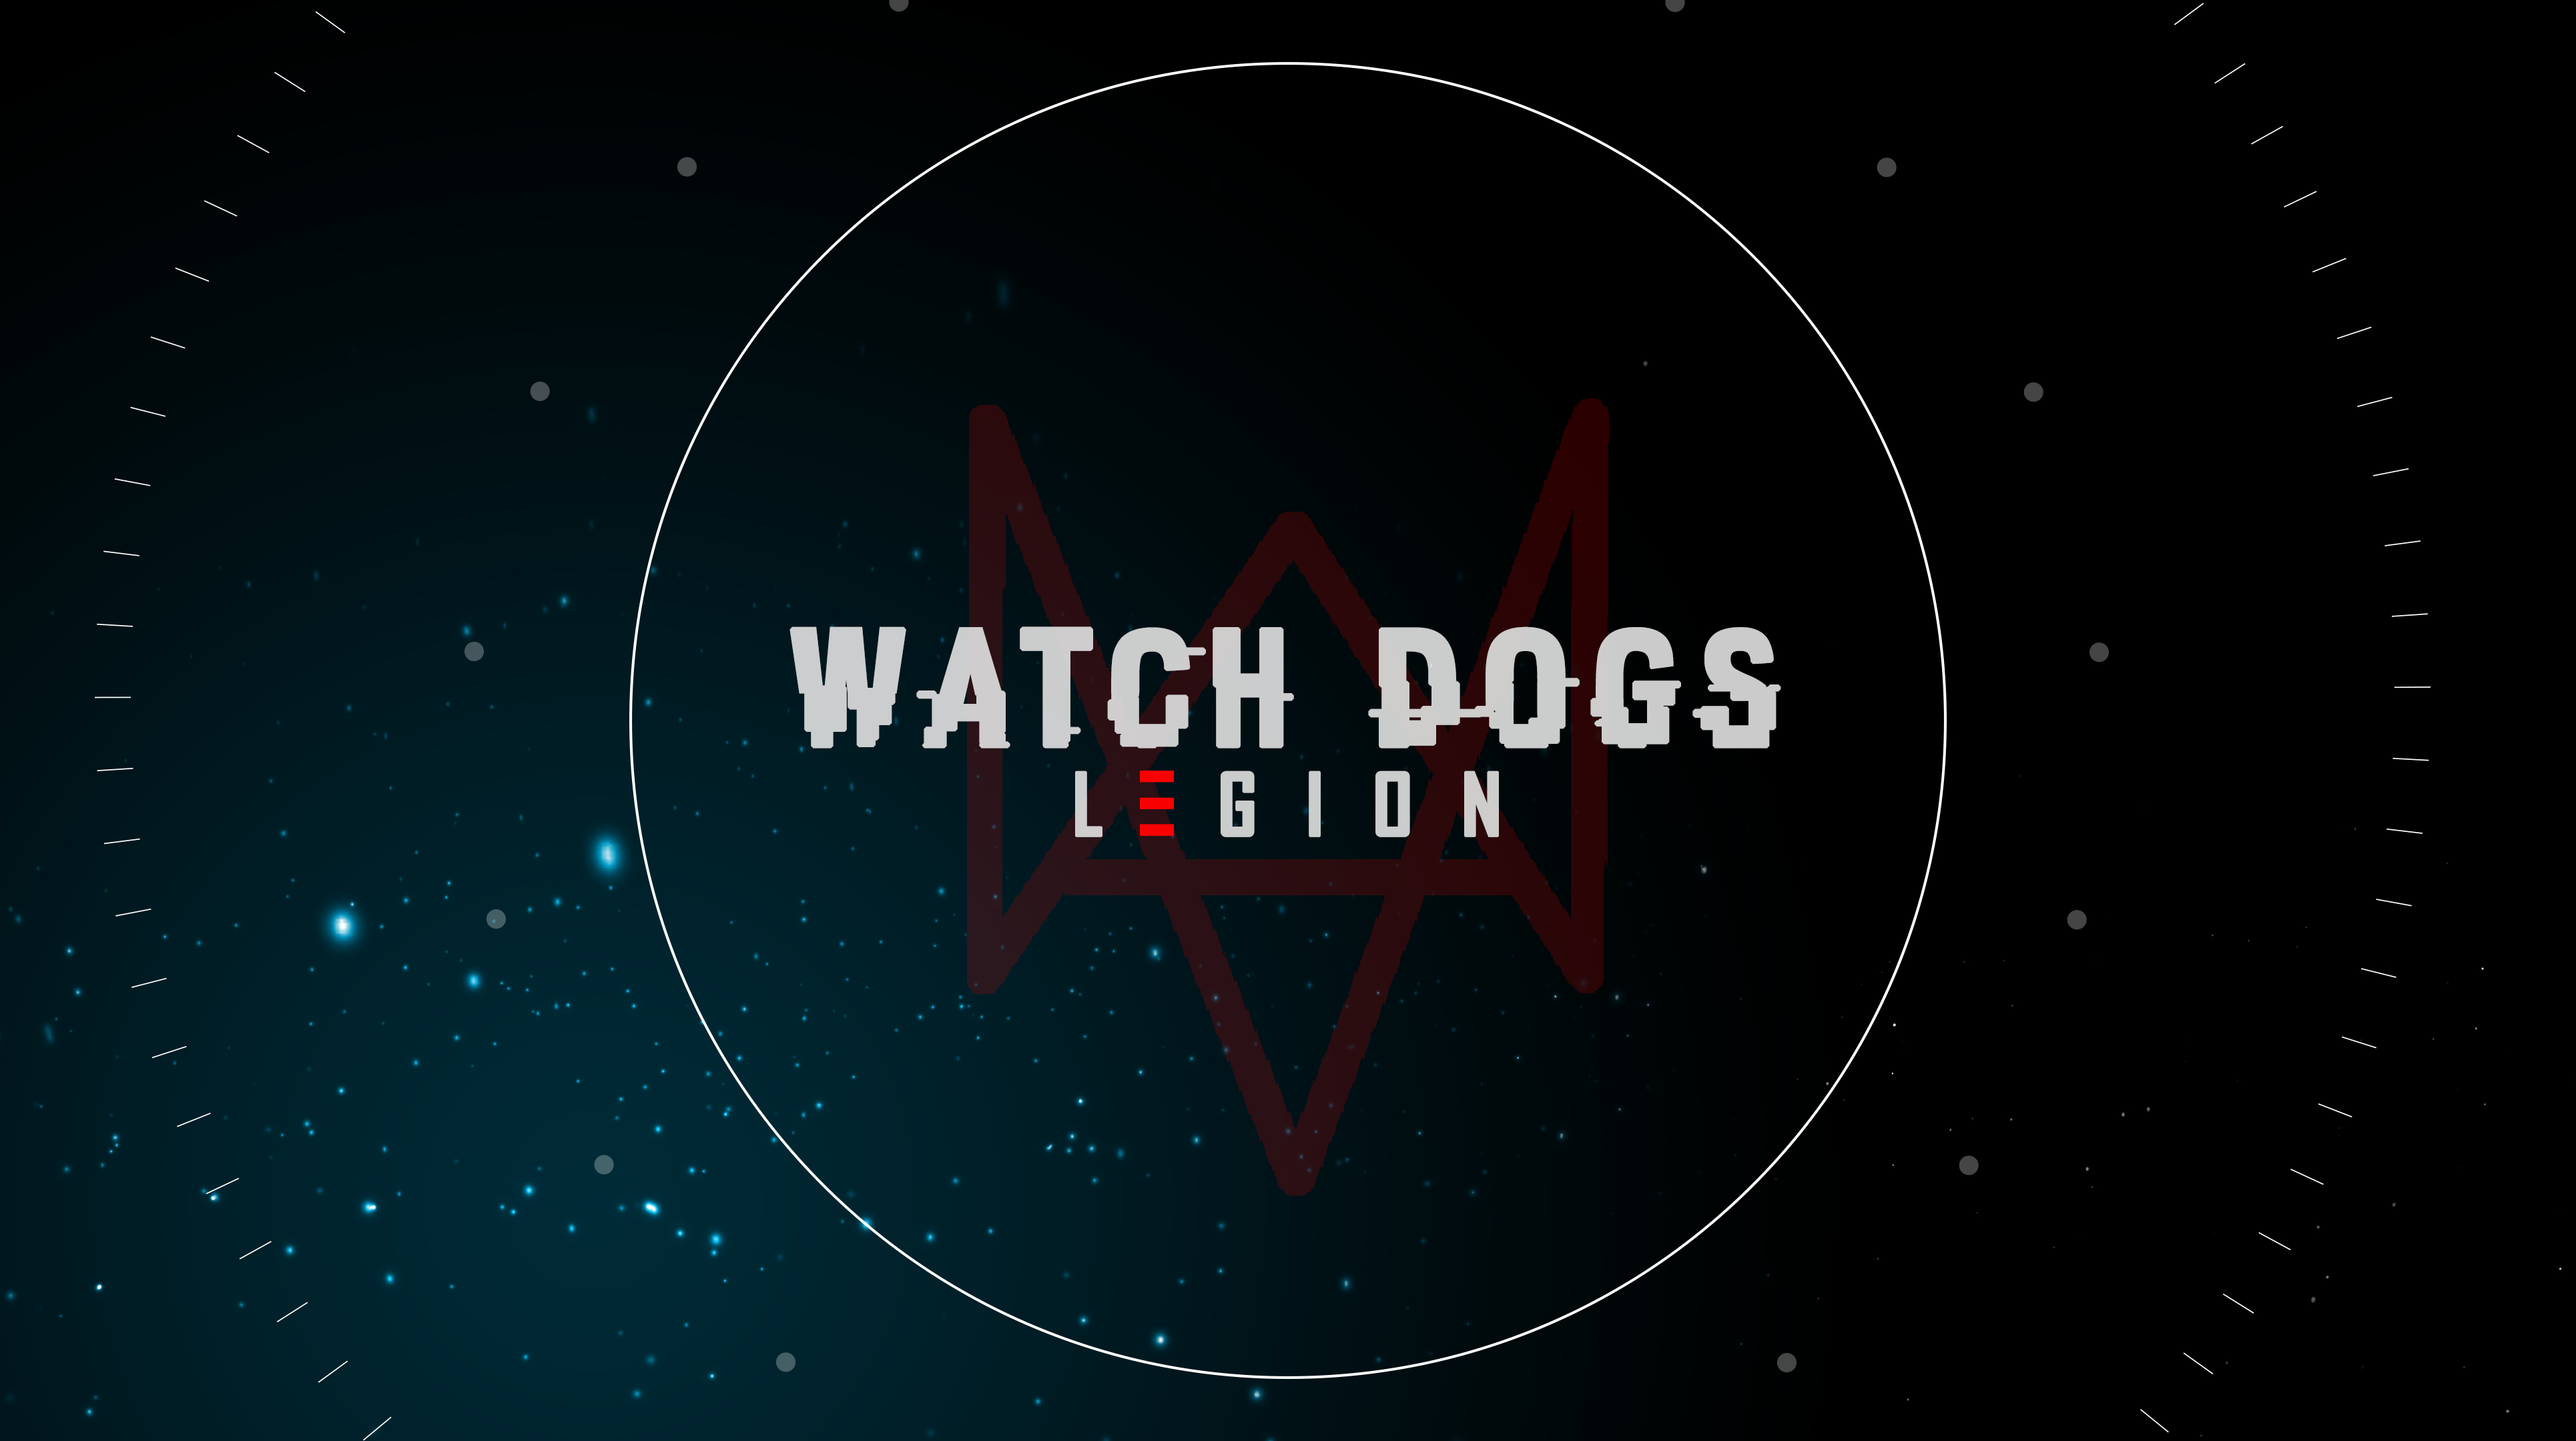 Watch Dogs Legion Logo Wallpaper Hd Games 4k Wallpapers Images Photos And Background